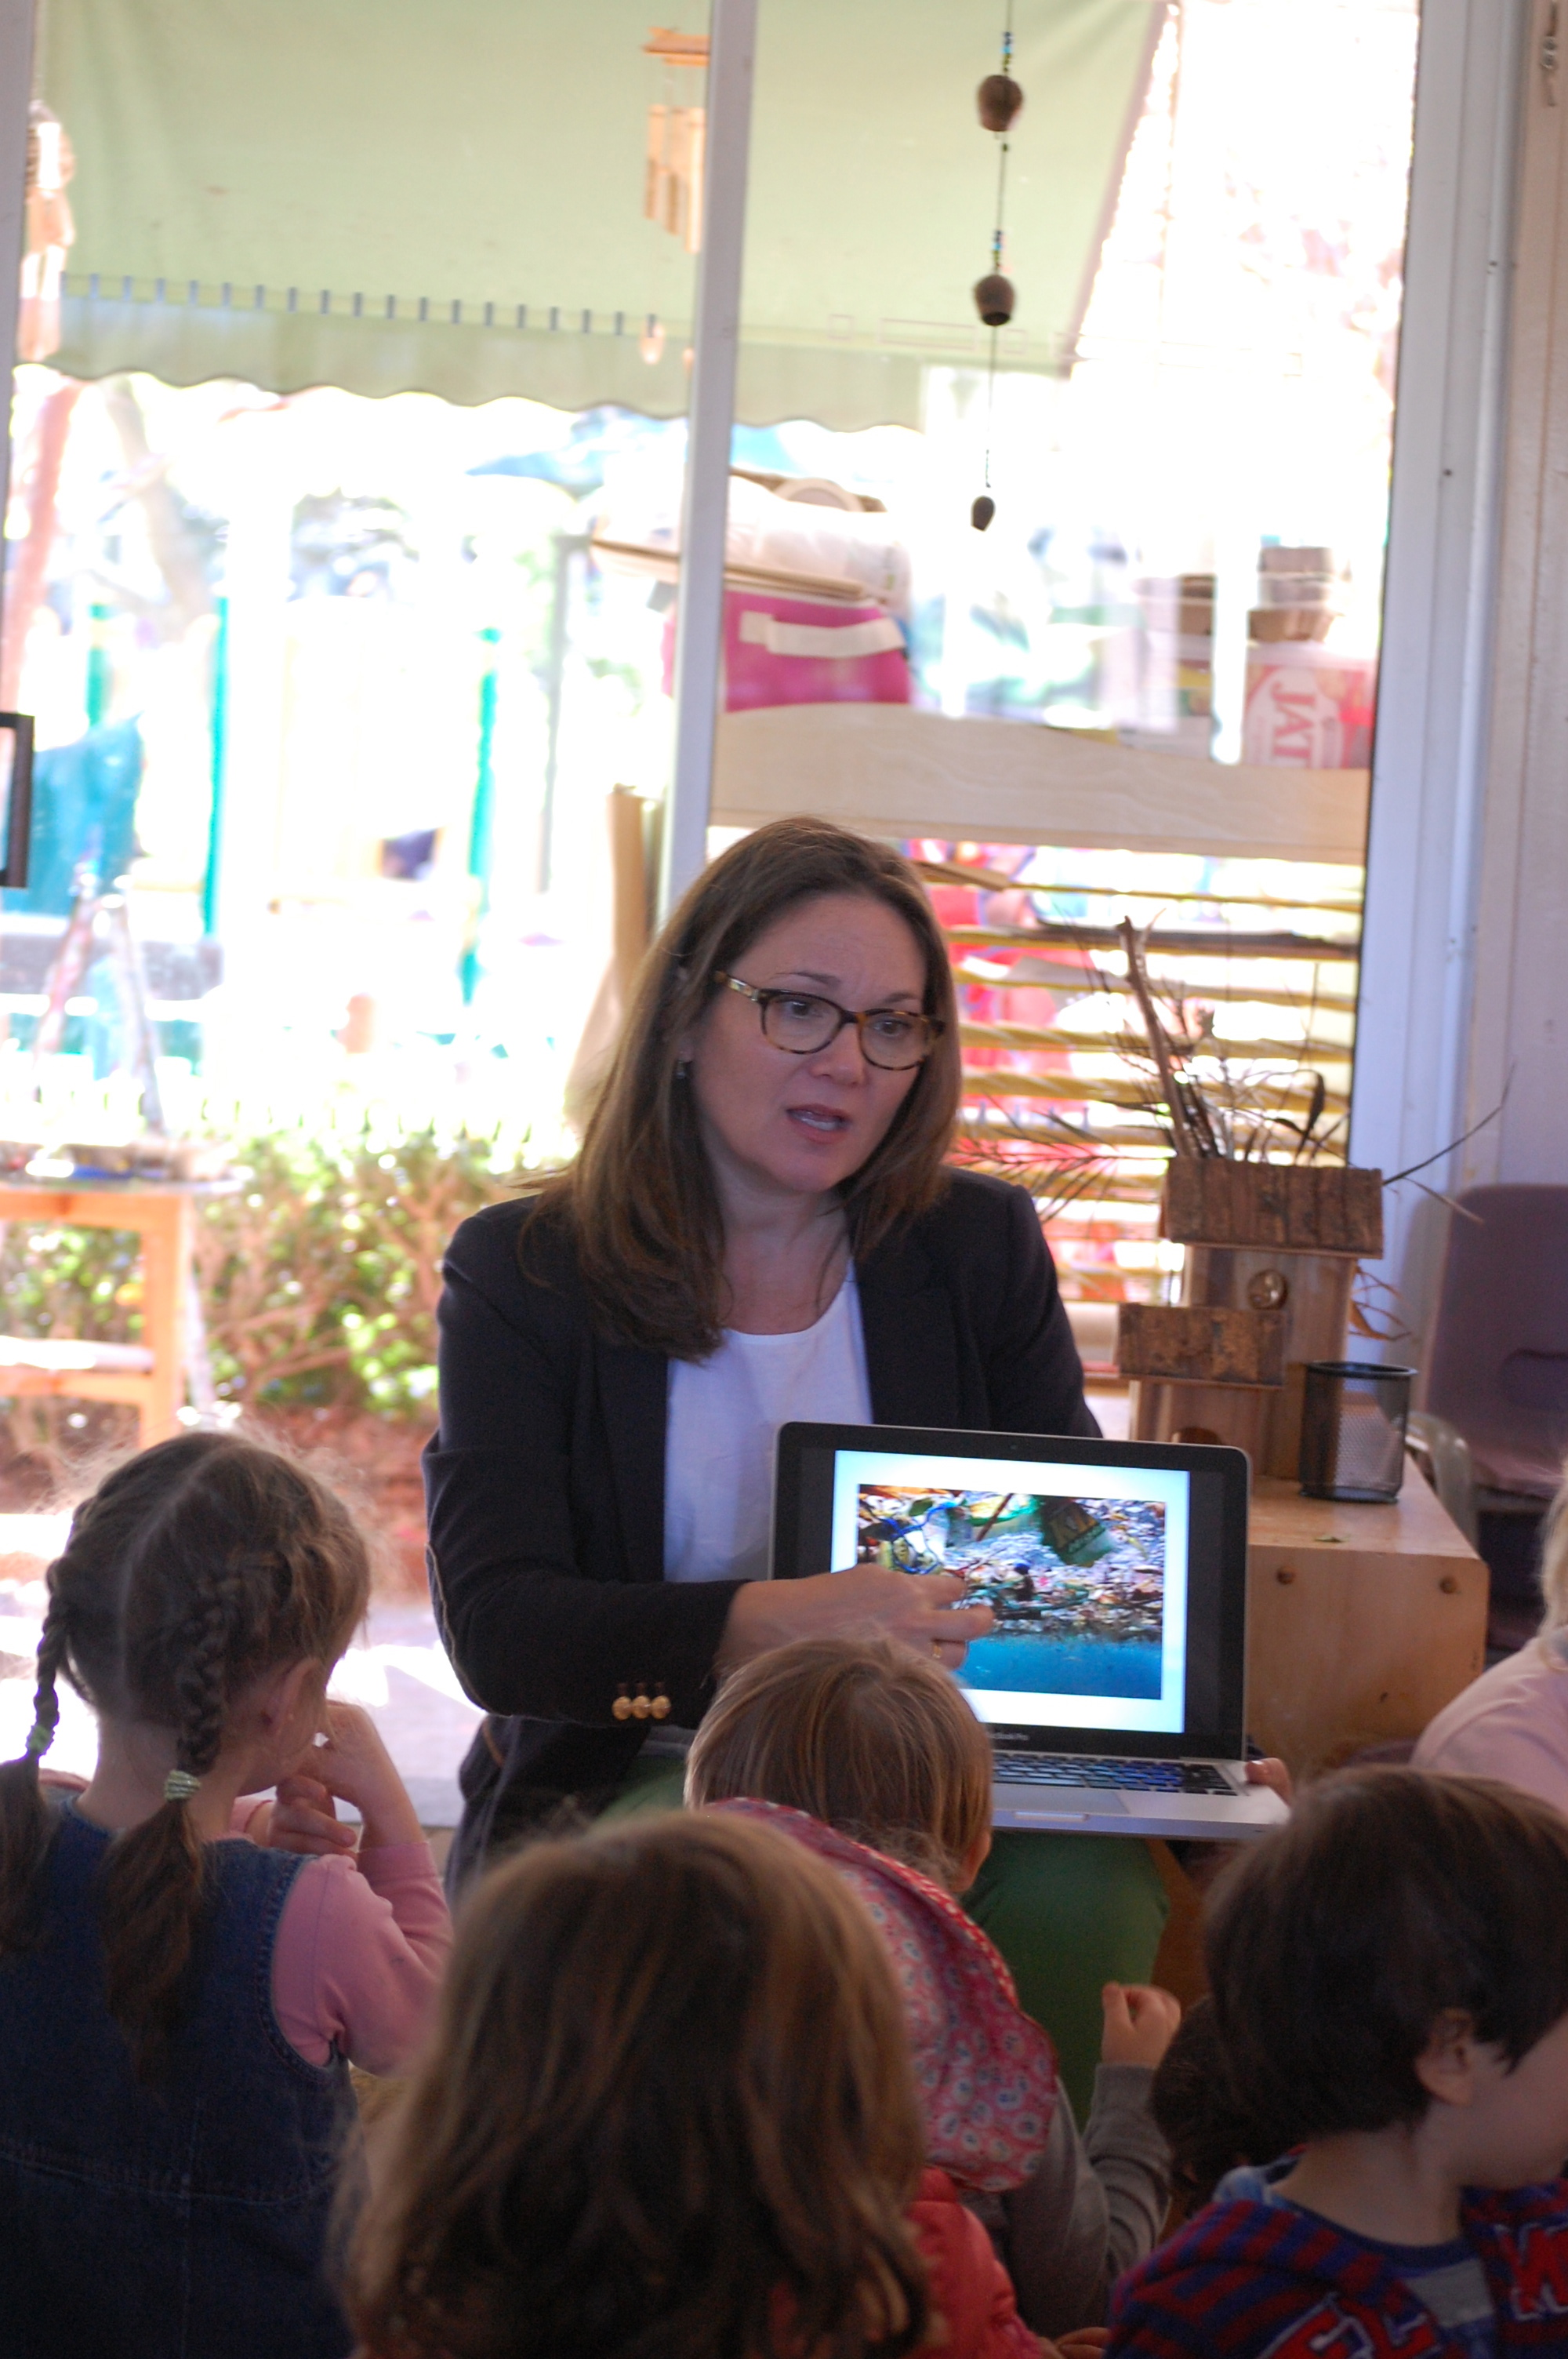 Discussing ocean pollution with a group of Pre-K students